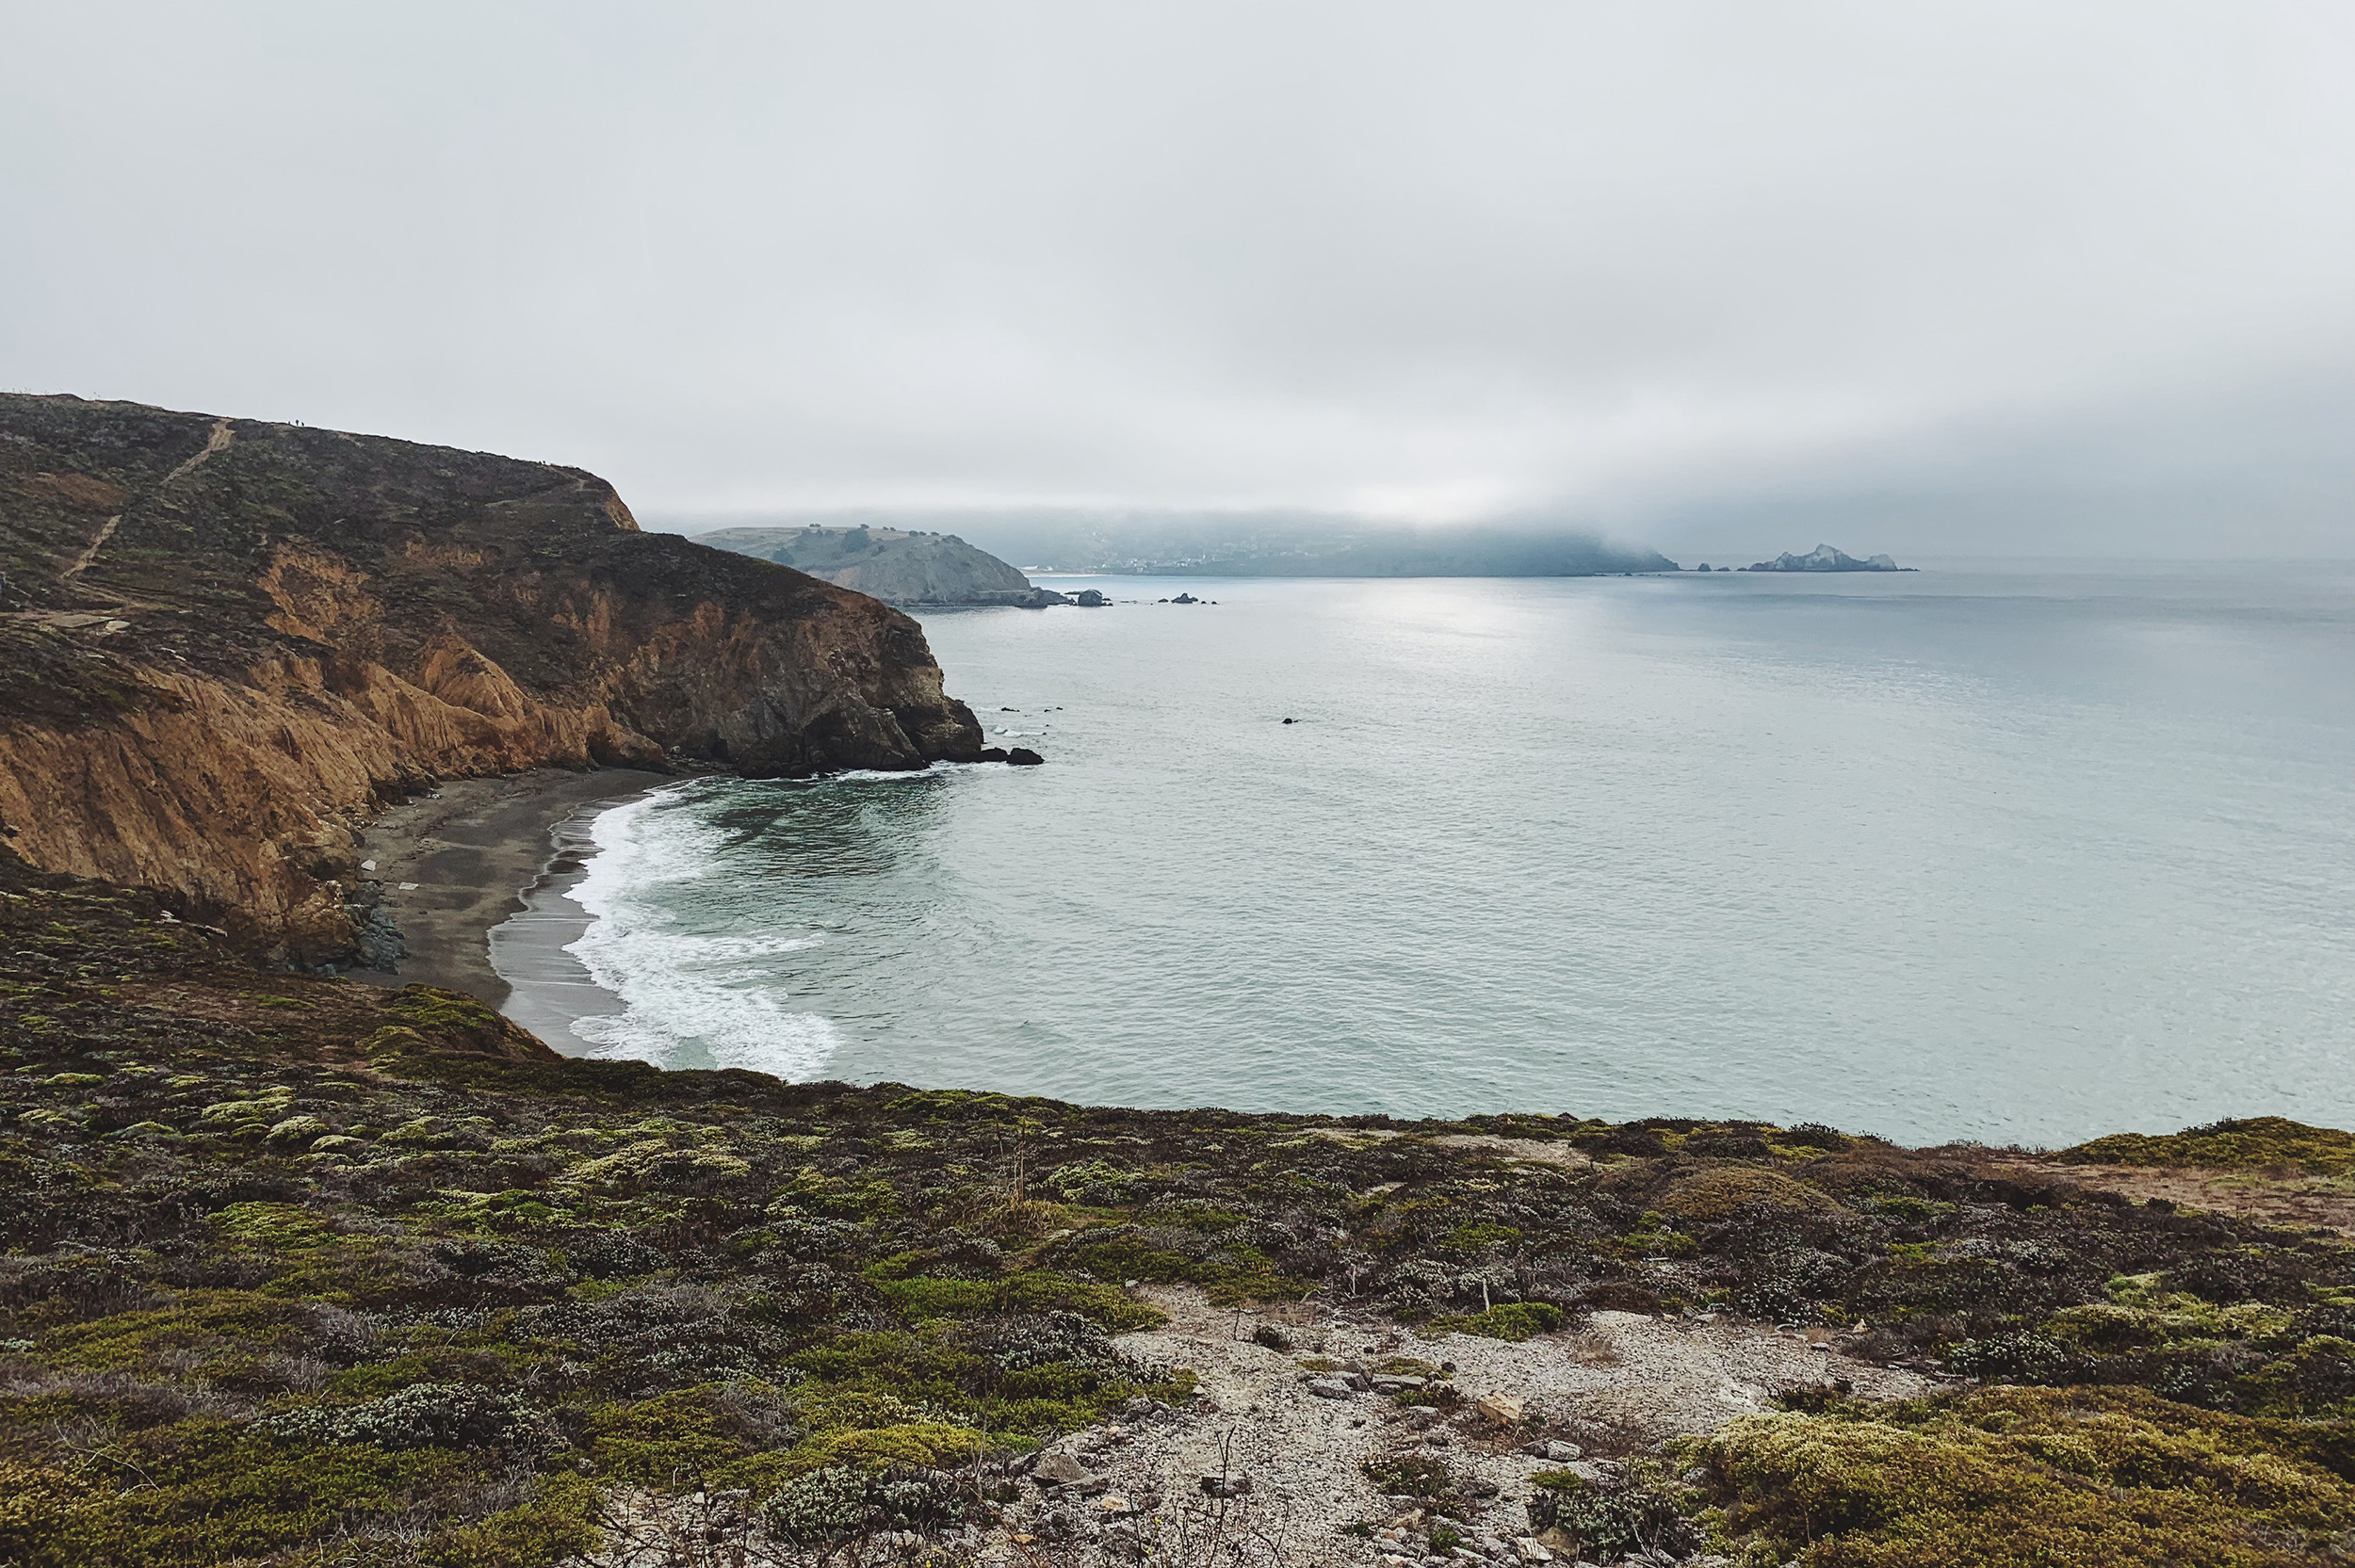 A short hike up the hill at Mori Point.